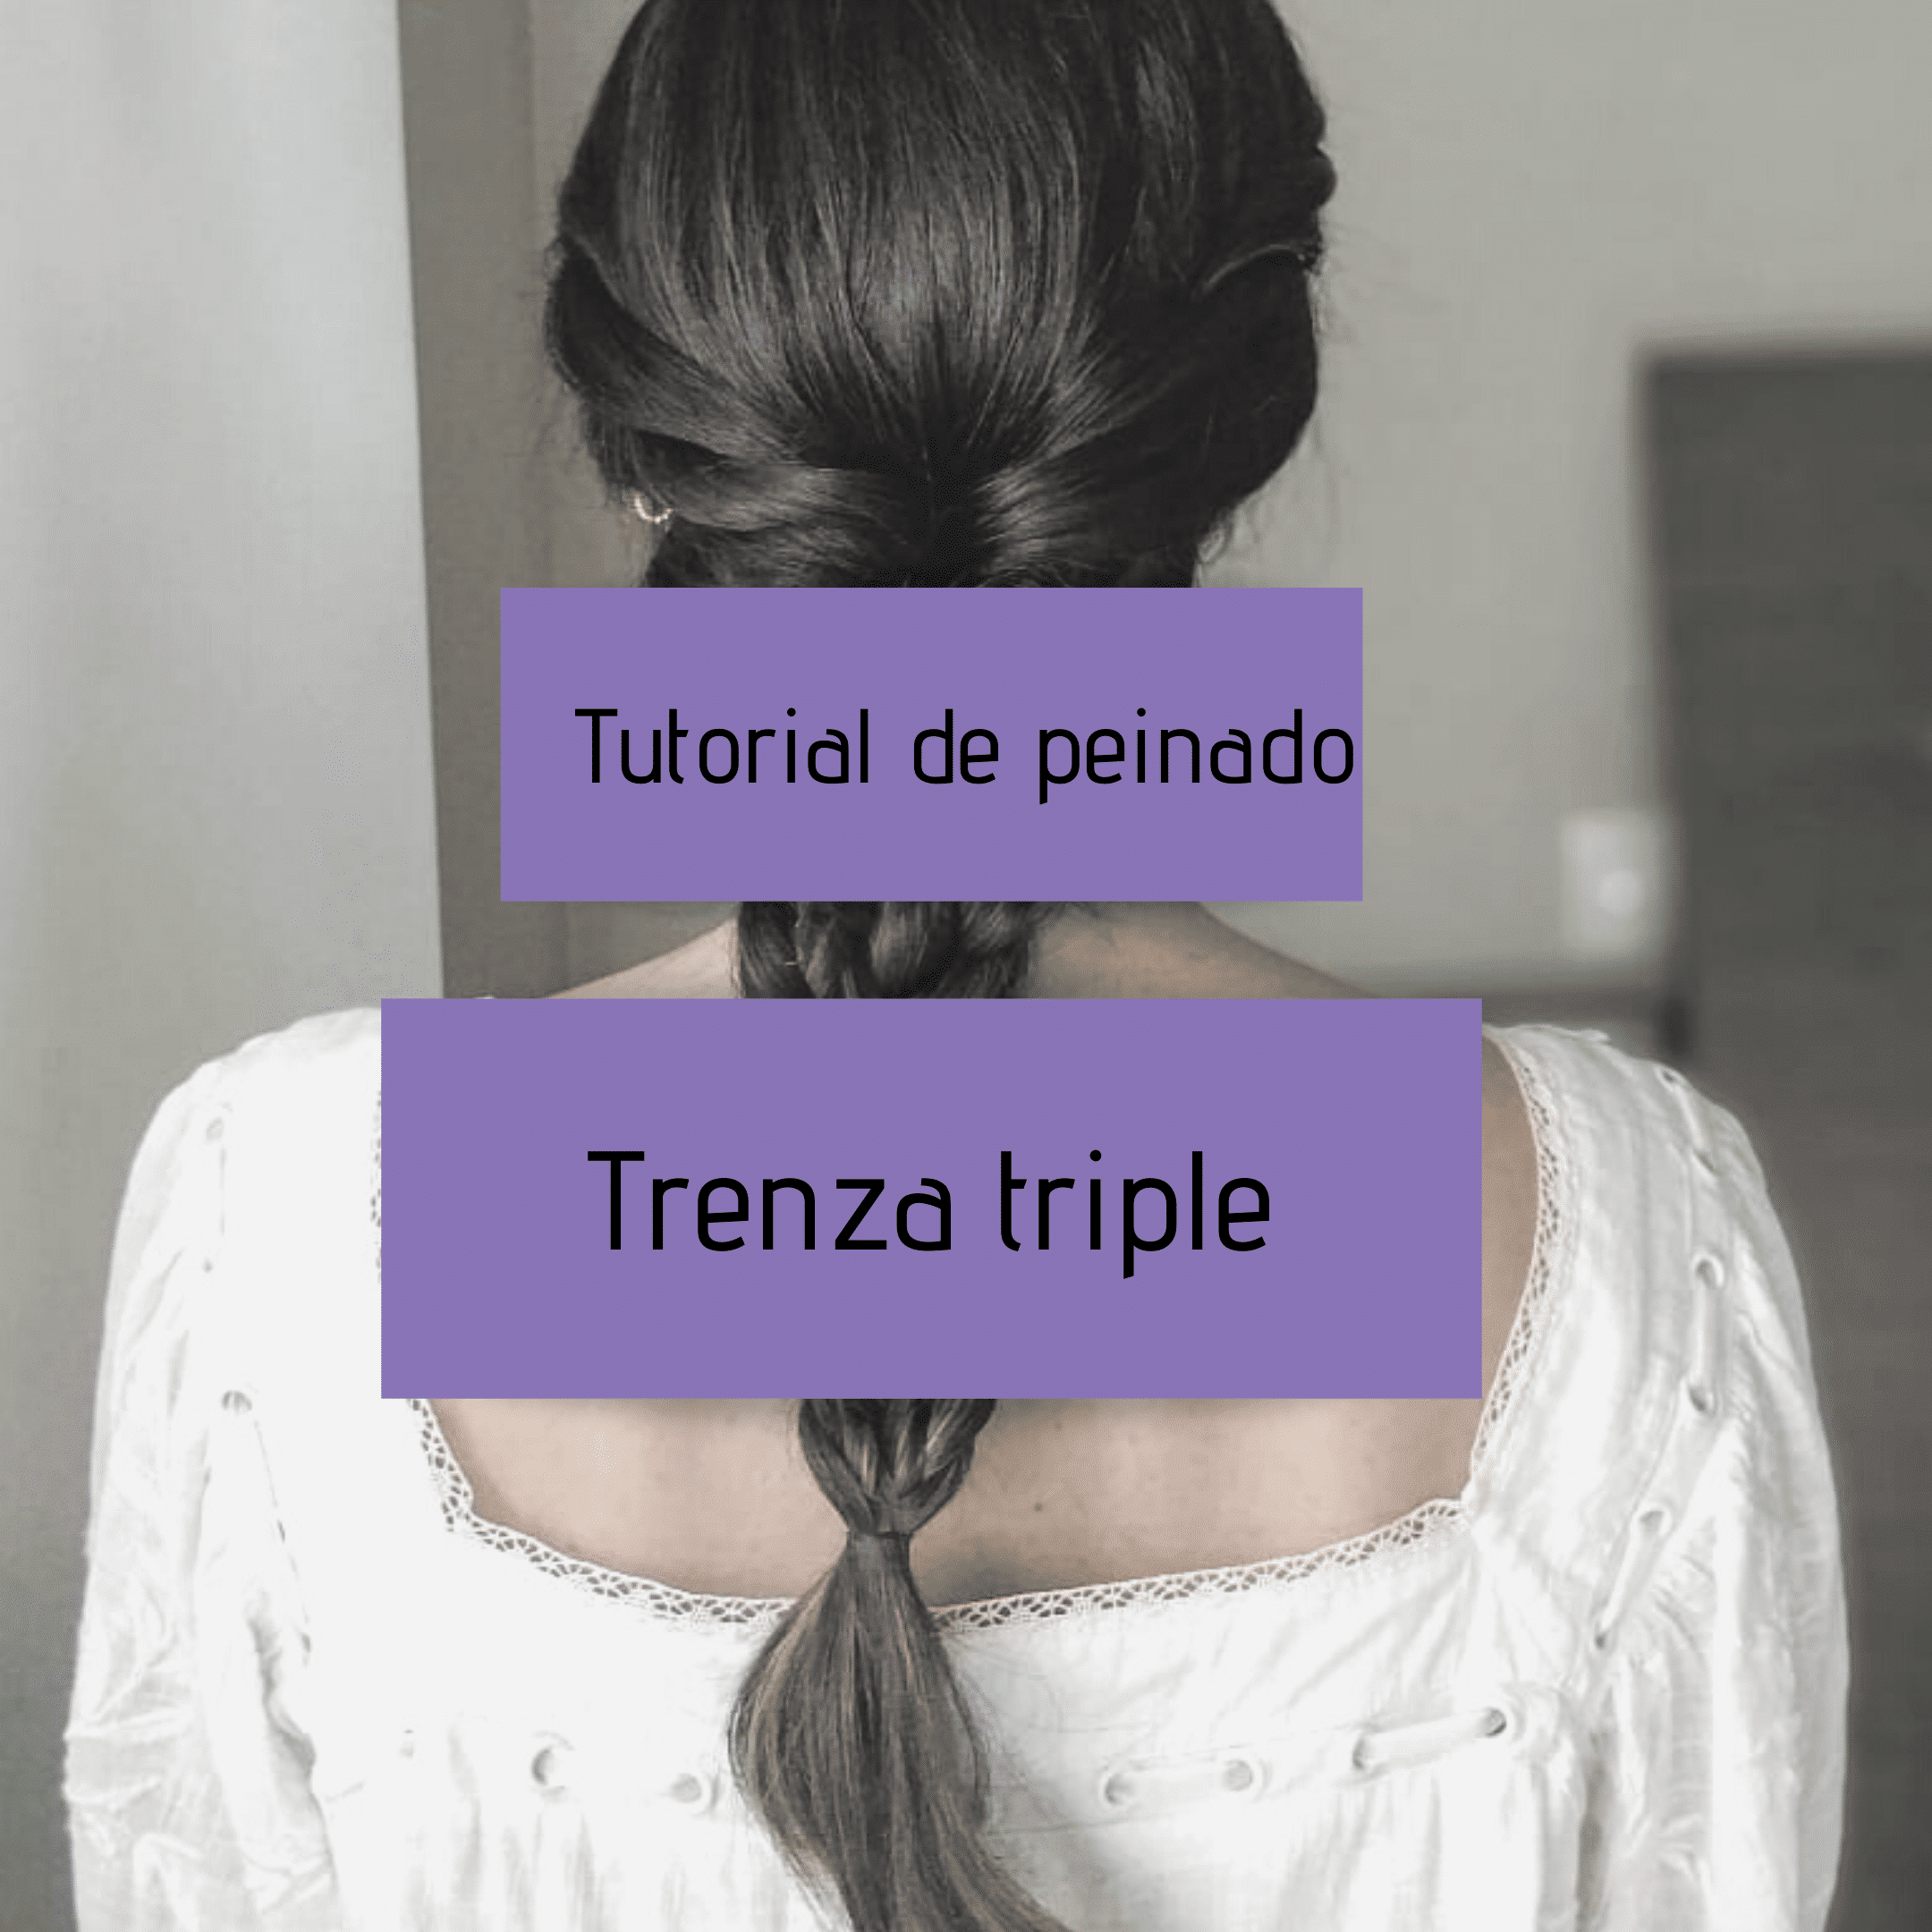 Tutorial de peinado - trenza triple